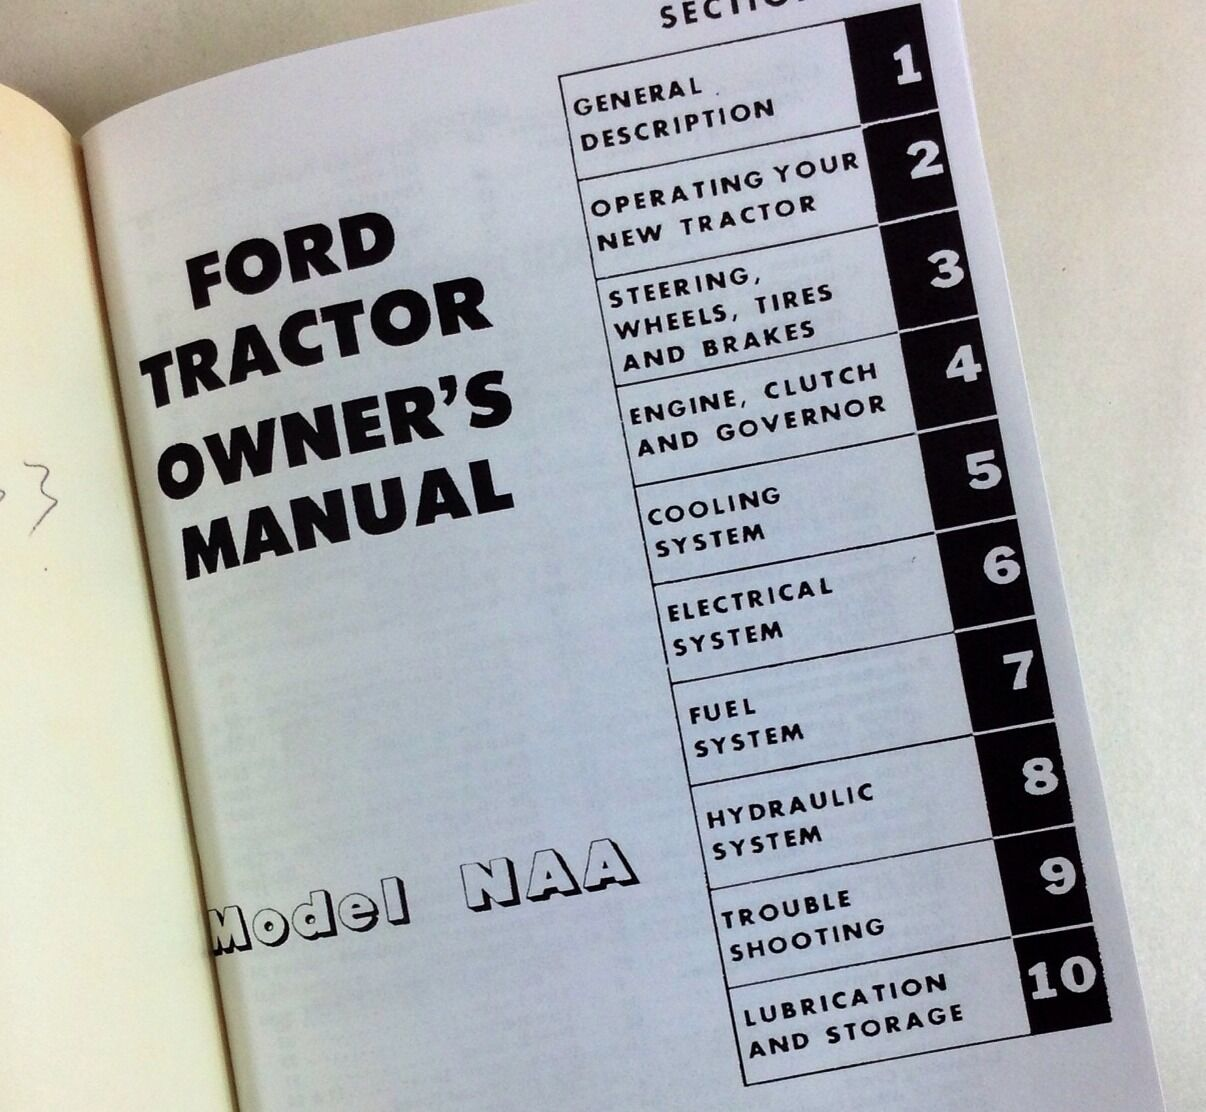 Ford Tractor Model Naa Owners Operators Manual User Guide Operation Wiring Diagram Pre Owned Lowest Price